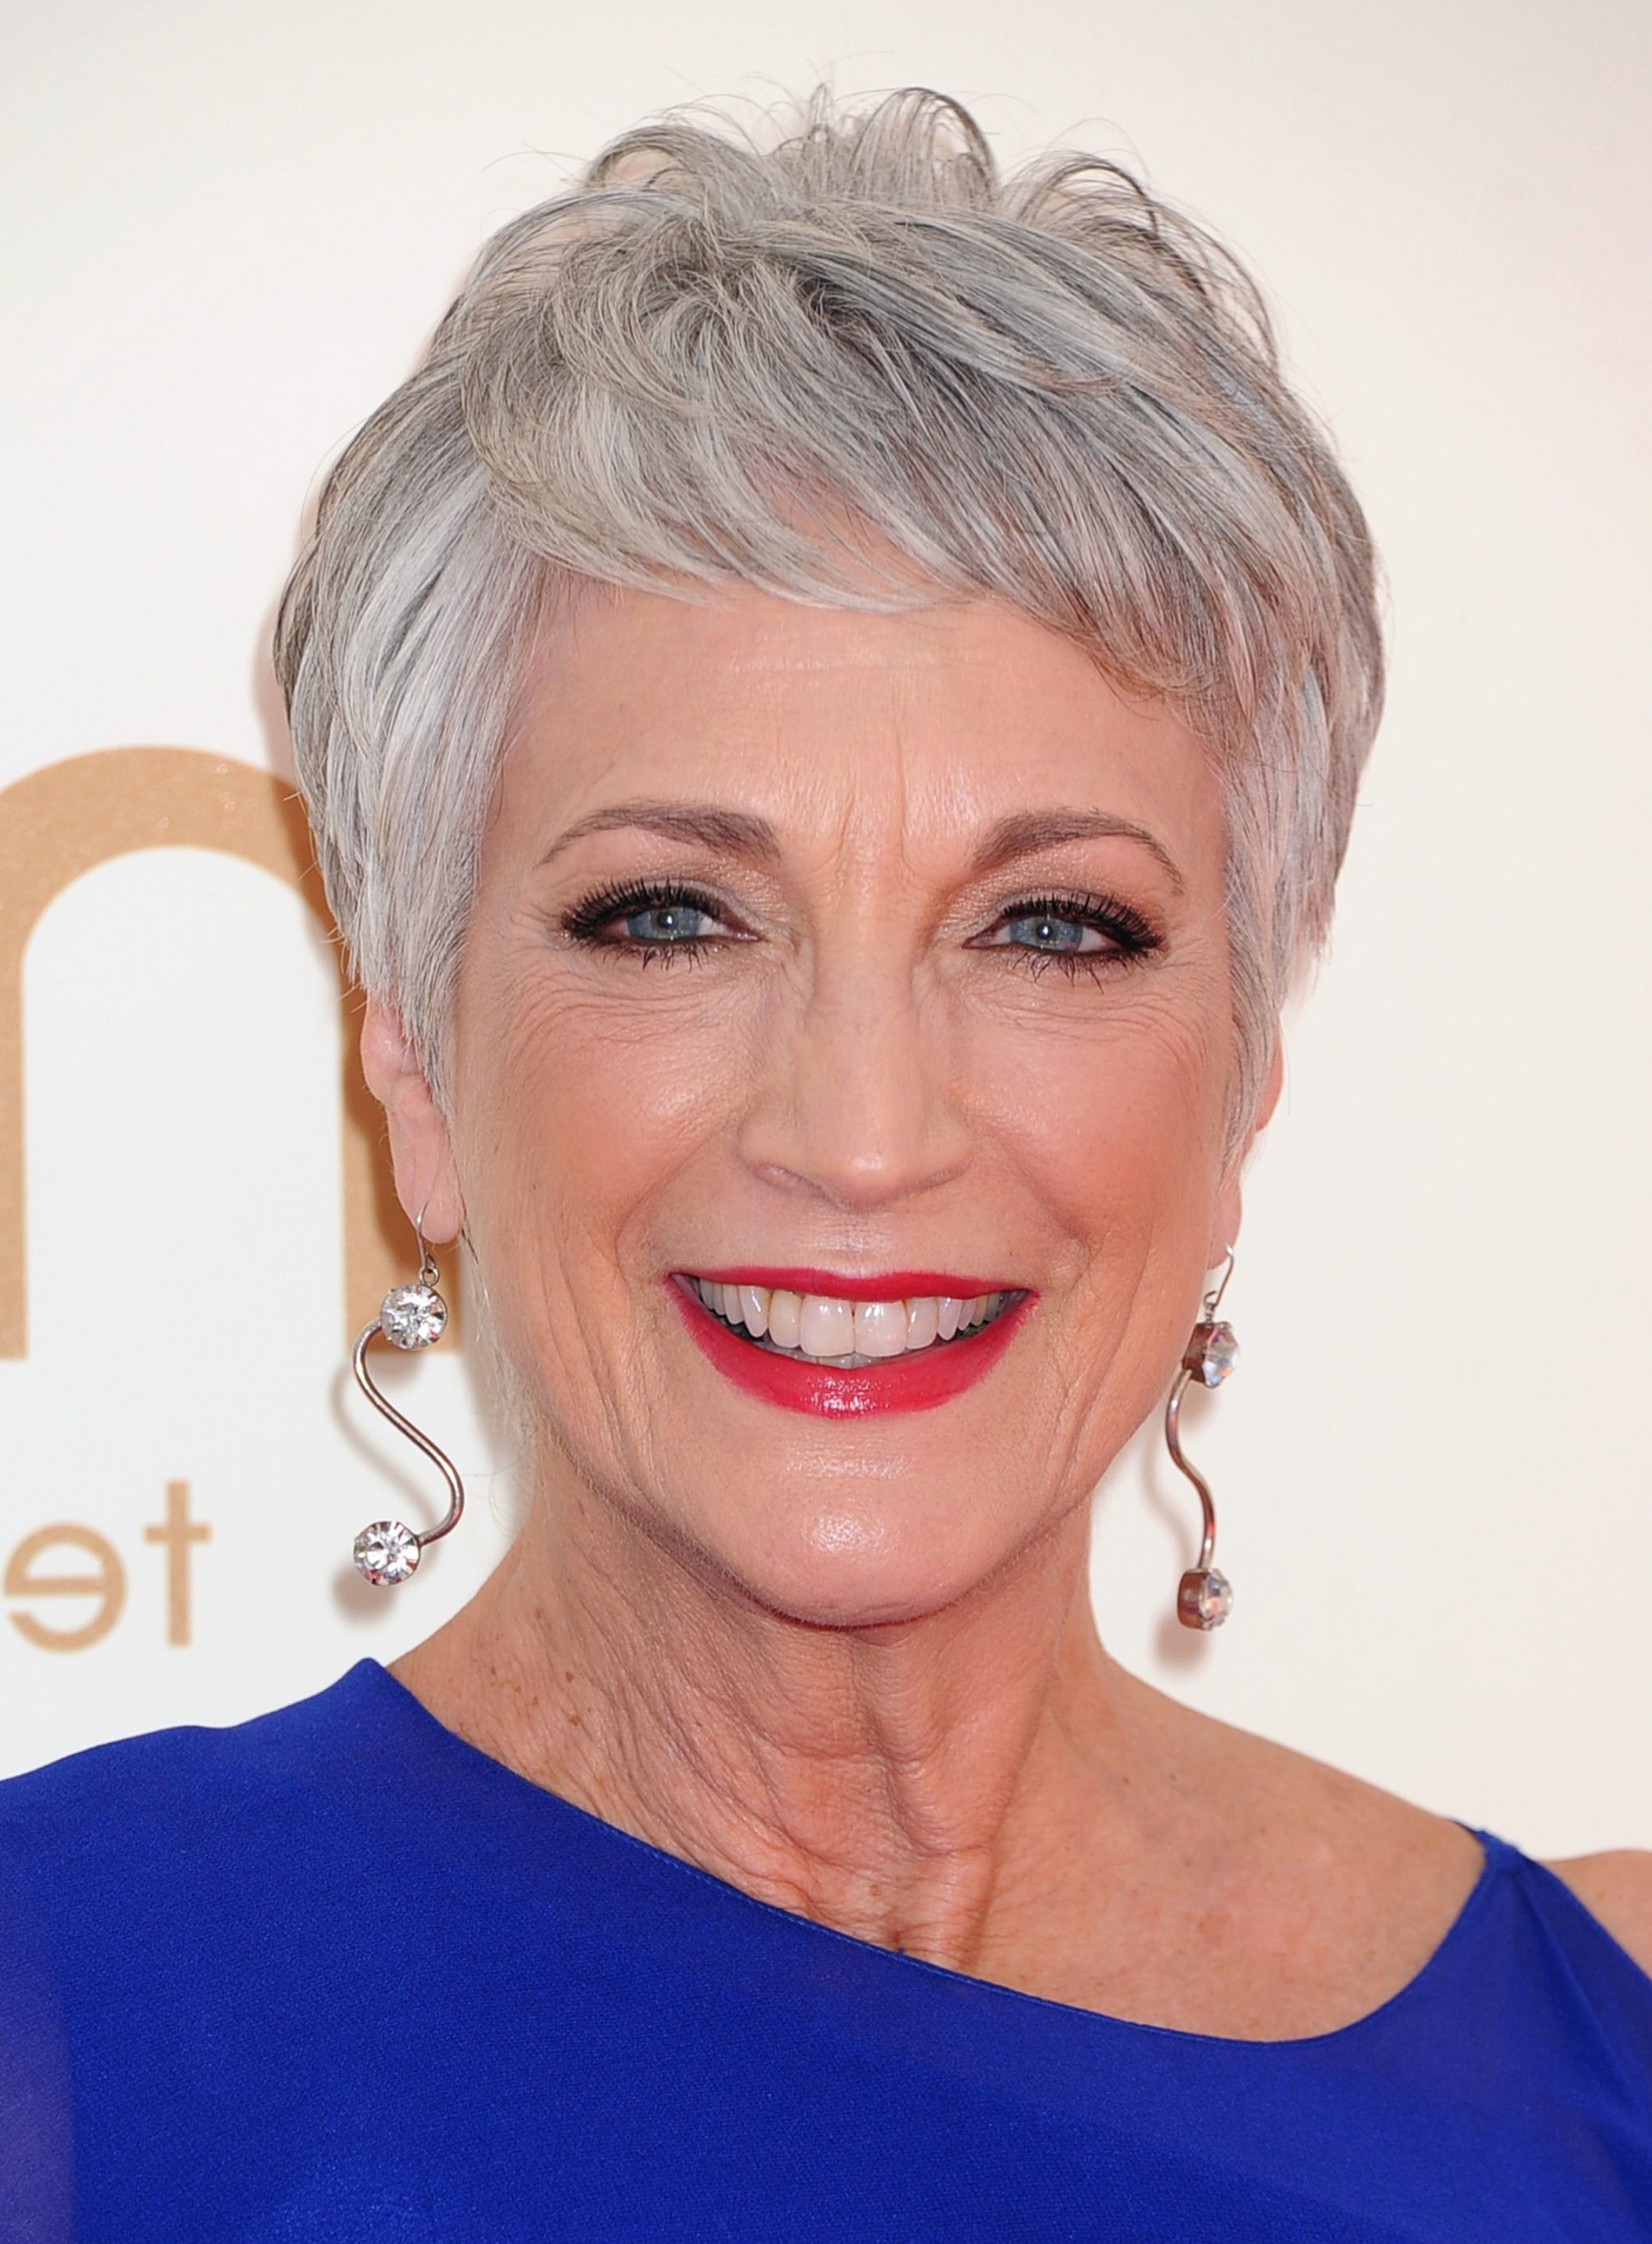 Short Hairstyles For Grey Hair Gallery | Best Hairstyles And Pertaining To Short Hairstyles For Women With Gray Hair (View 11 of 25)